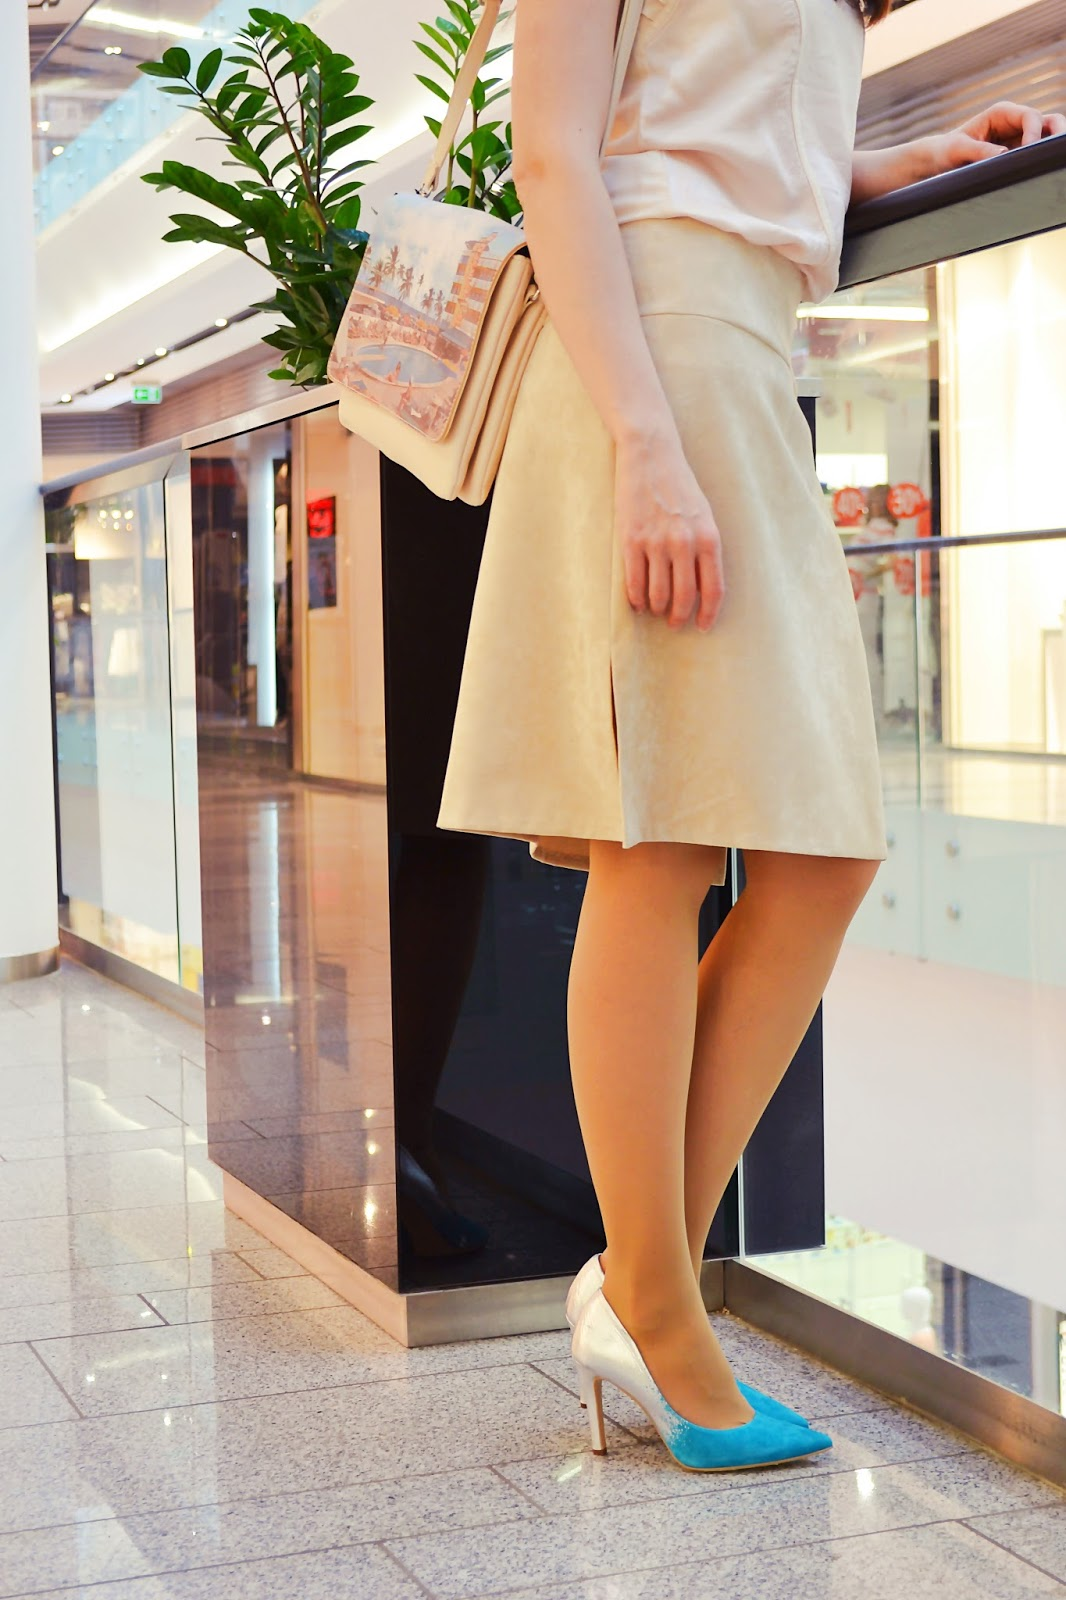 When first impression not equals to all sensation Katharine-fashion is beautiful